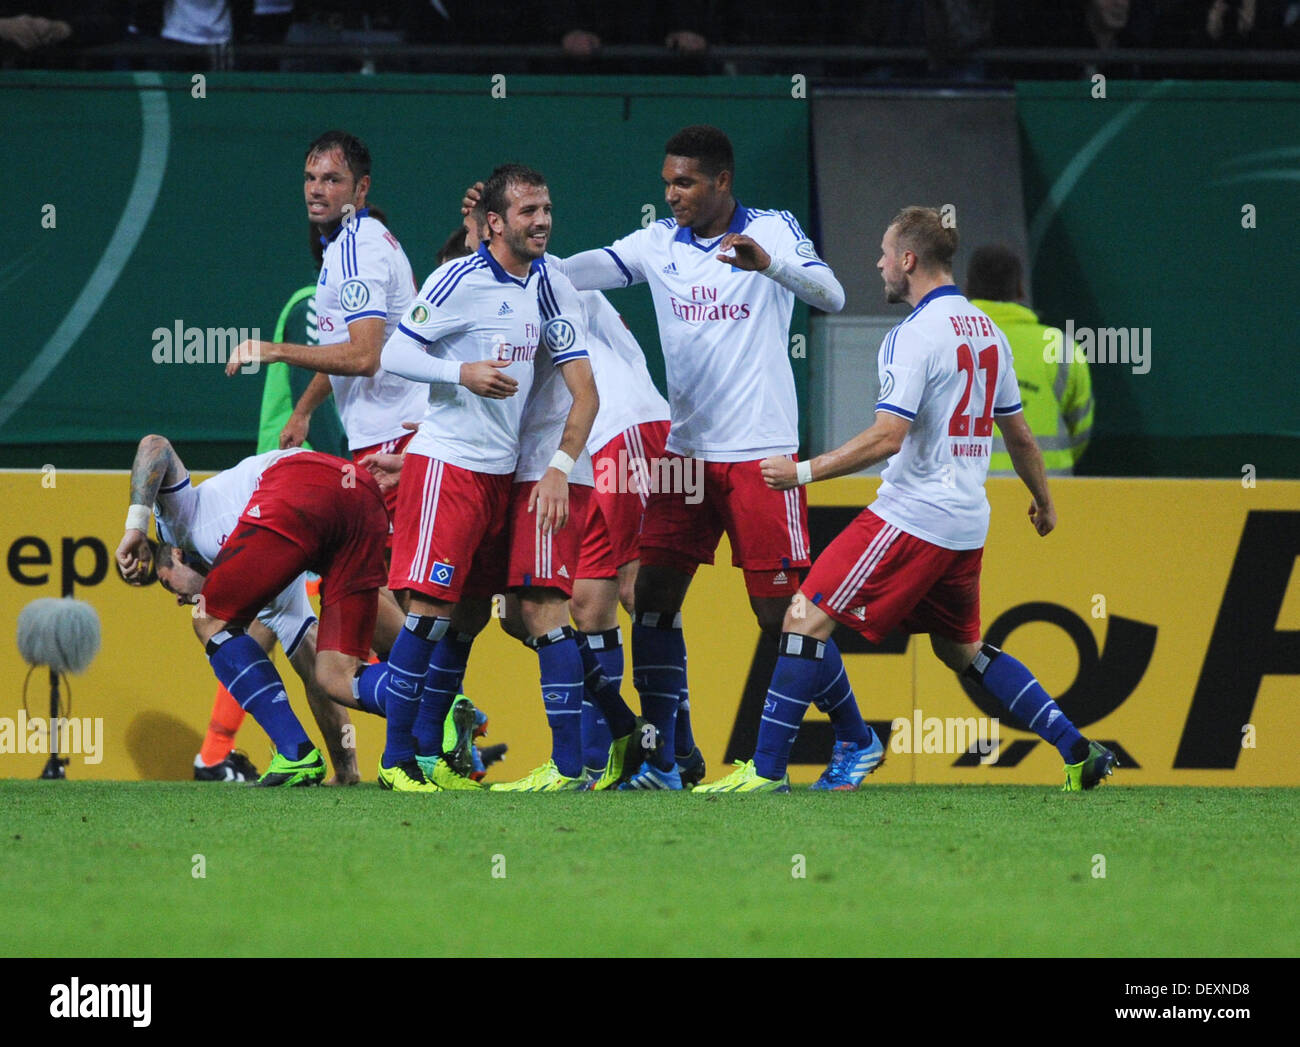 Hamburg, Germany. 24th Sep, 2013. Hamburg's players including Heiko Westermann (2-L), Rafael van der Vaart (3-L), Maximilian Beister (R) celebrate with Pierre-Michael Lasogga after his 1-0 goal during the DFB Cup second round match between Hamburger SV and SpVgg Greuther Fuerth at Imtech Arena in Hamburg, Germany, 24 September 2013. Photo: ANGELIKA WARMUTH/dpa/Alamy Live News - Stock Image